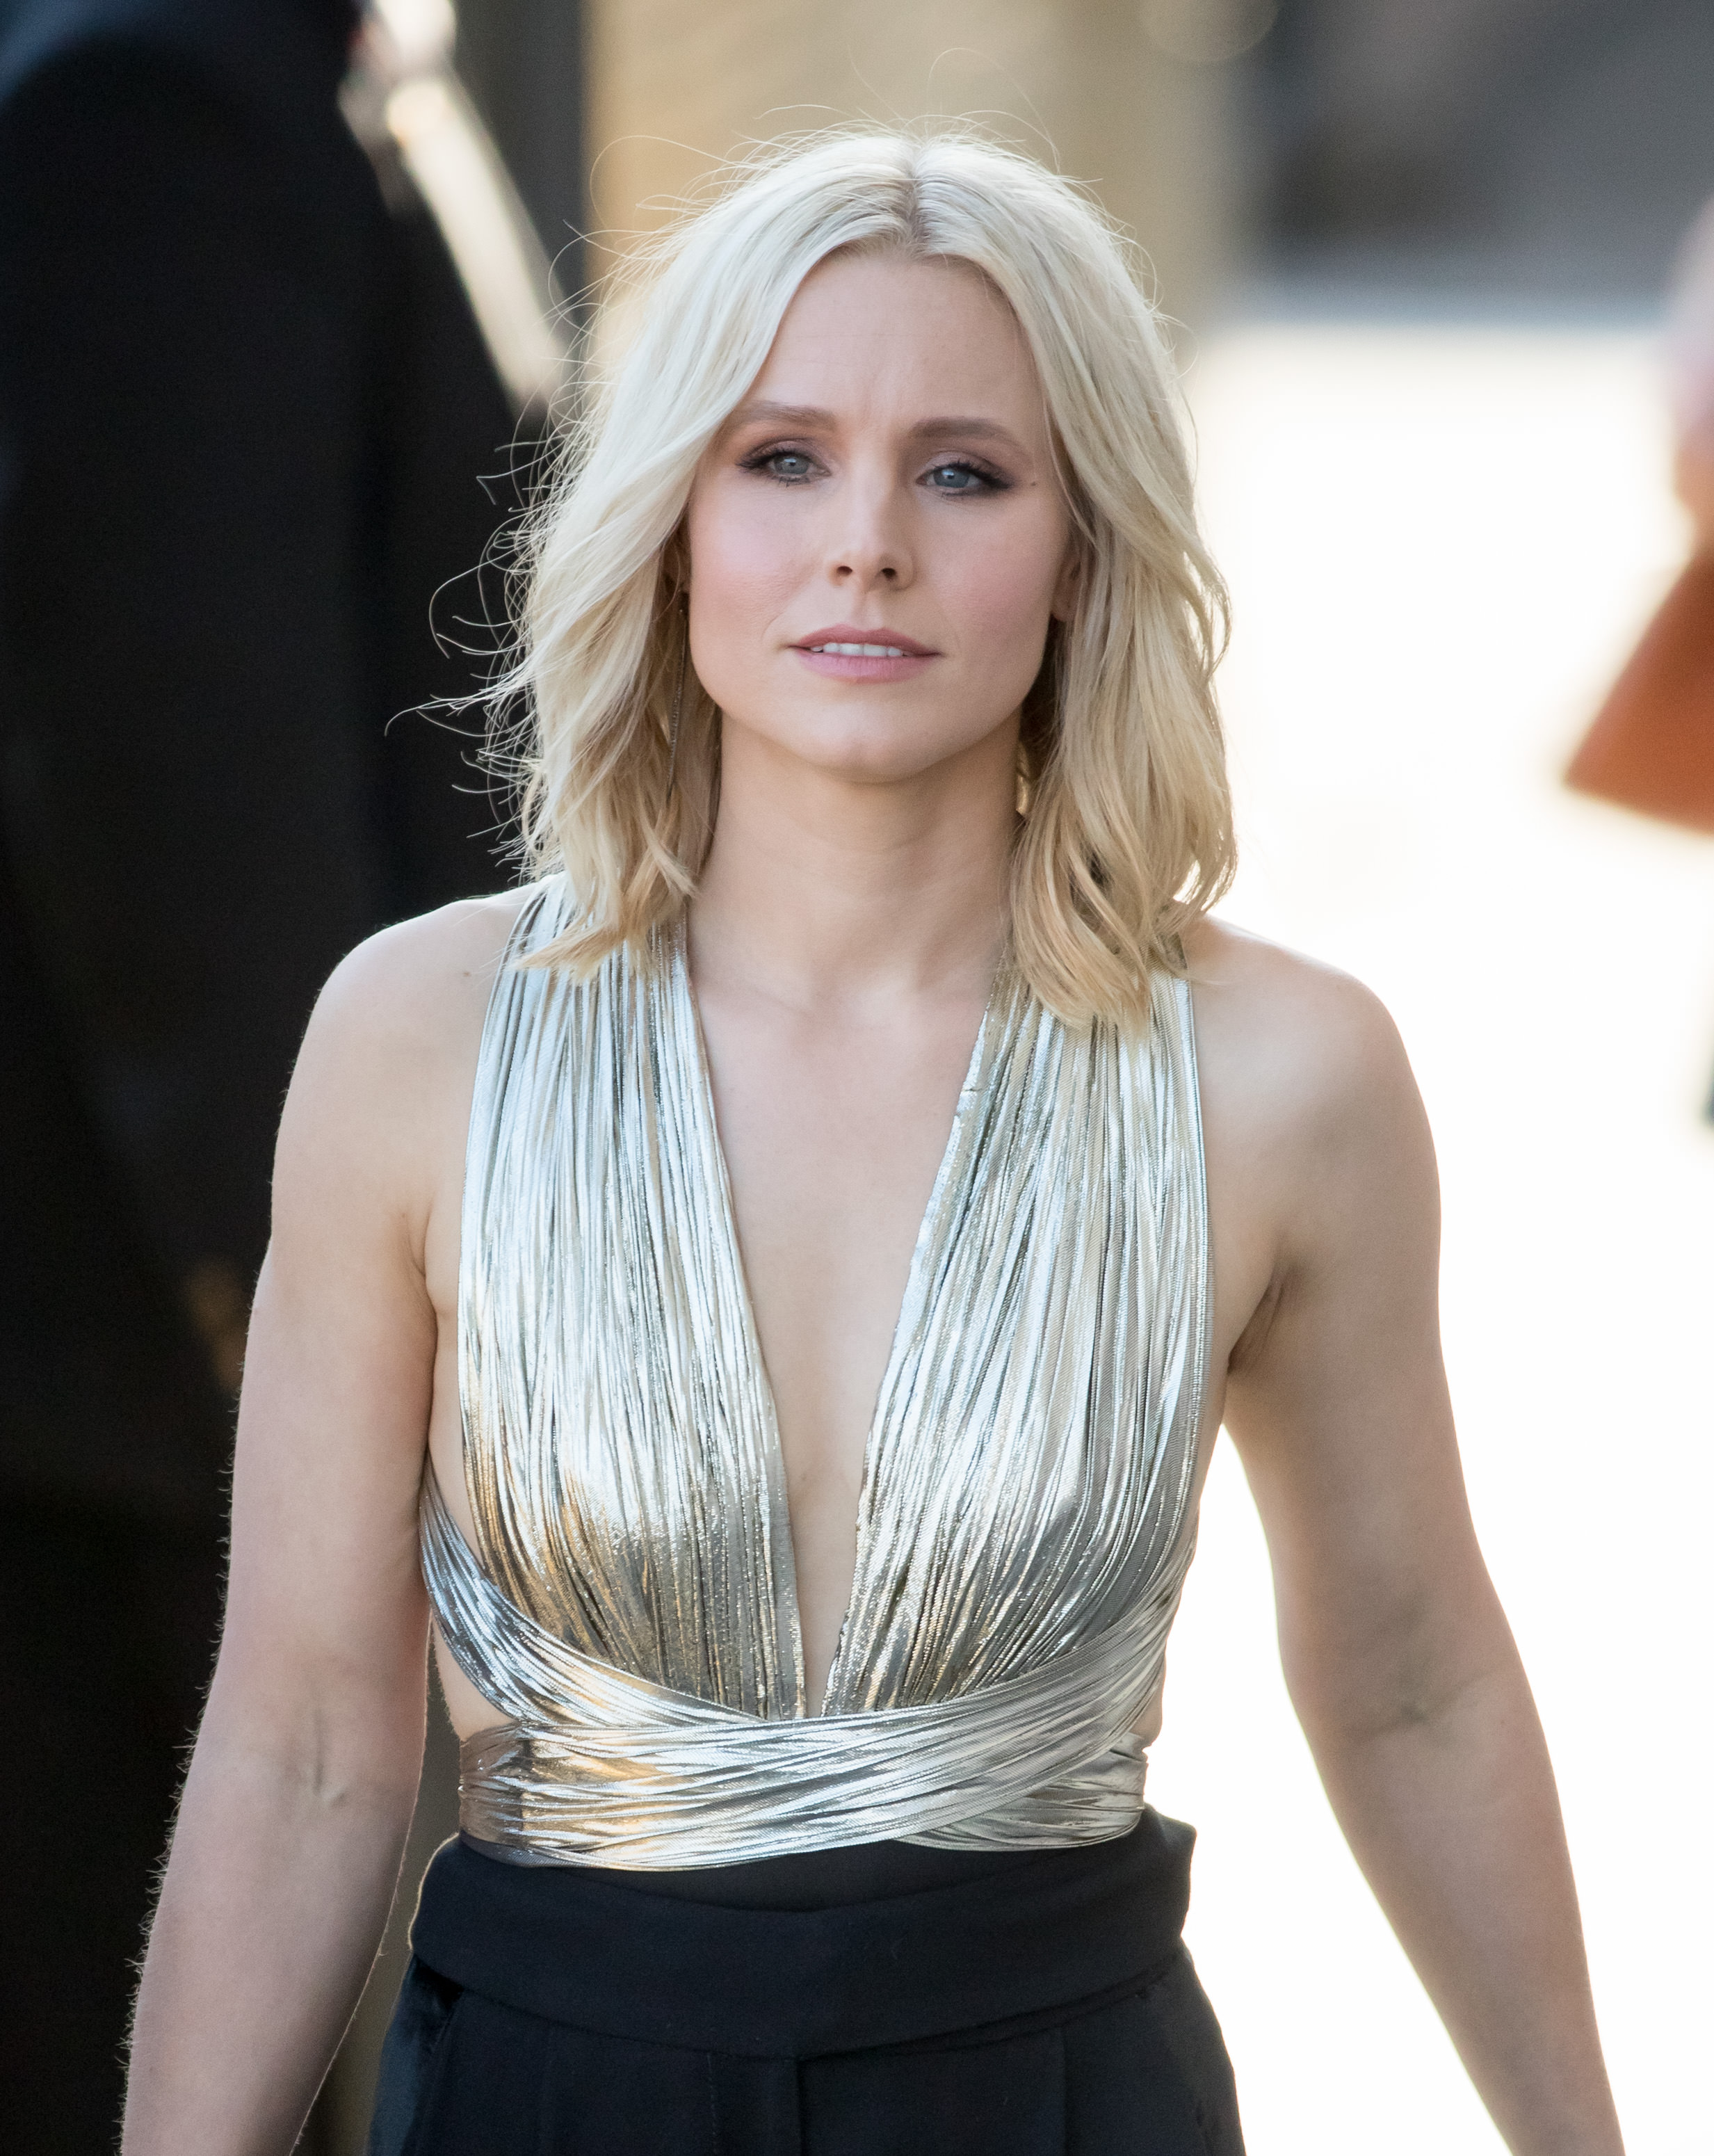 Kristen bell looks like a disco queen in this metallic outfit